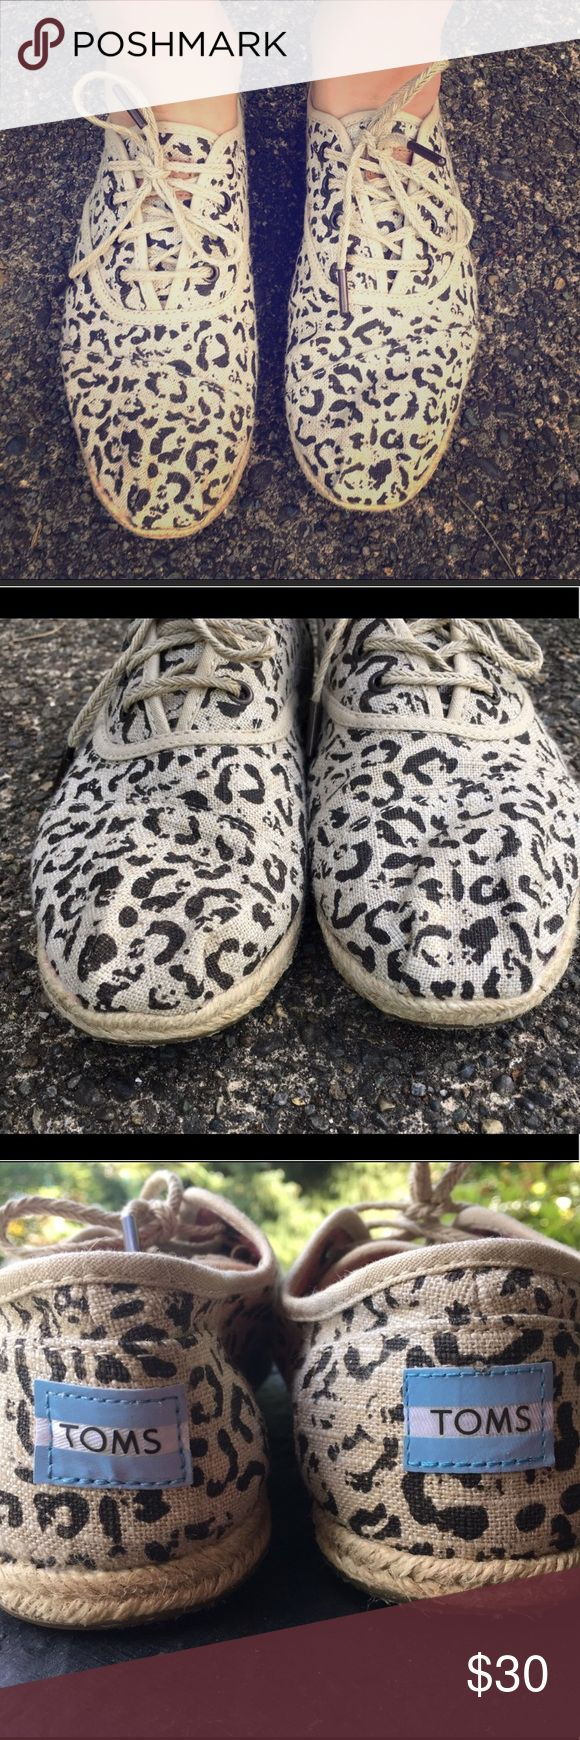 Super cute leopard Toms! Super cute leopard Toms, worn once! TOMS Shoes